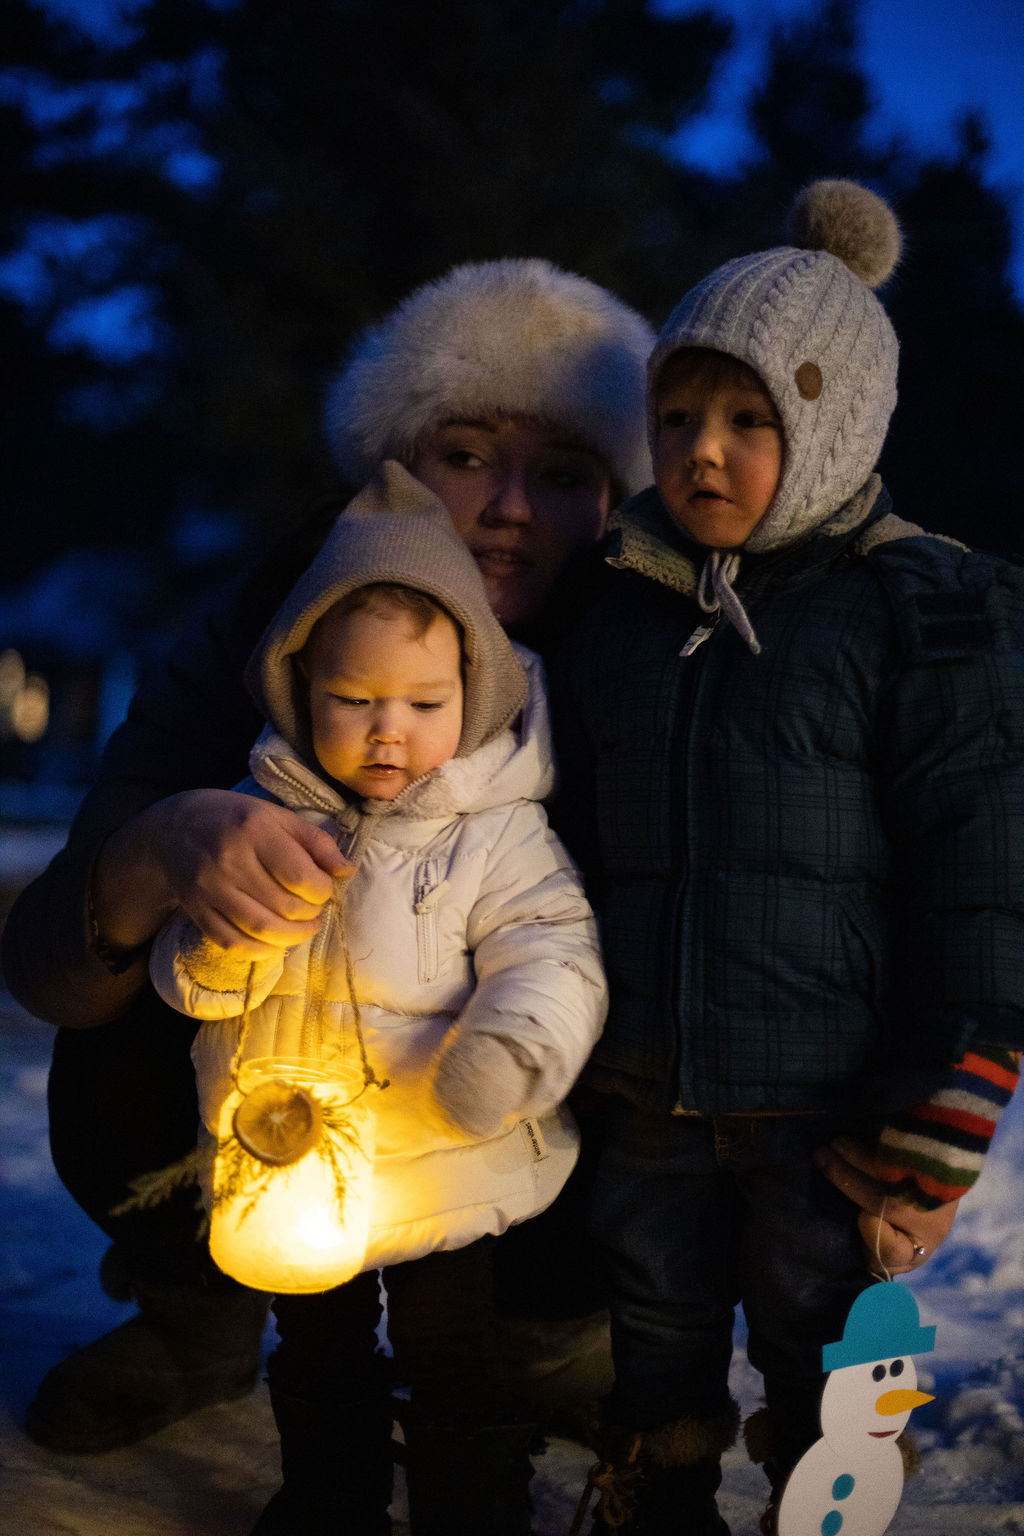 Winter Solstice festival at Real Red Riding Hoods forest school